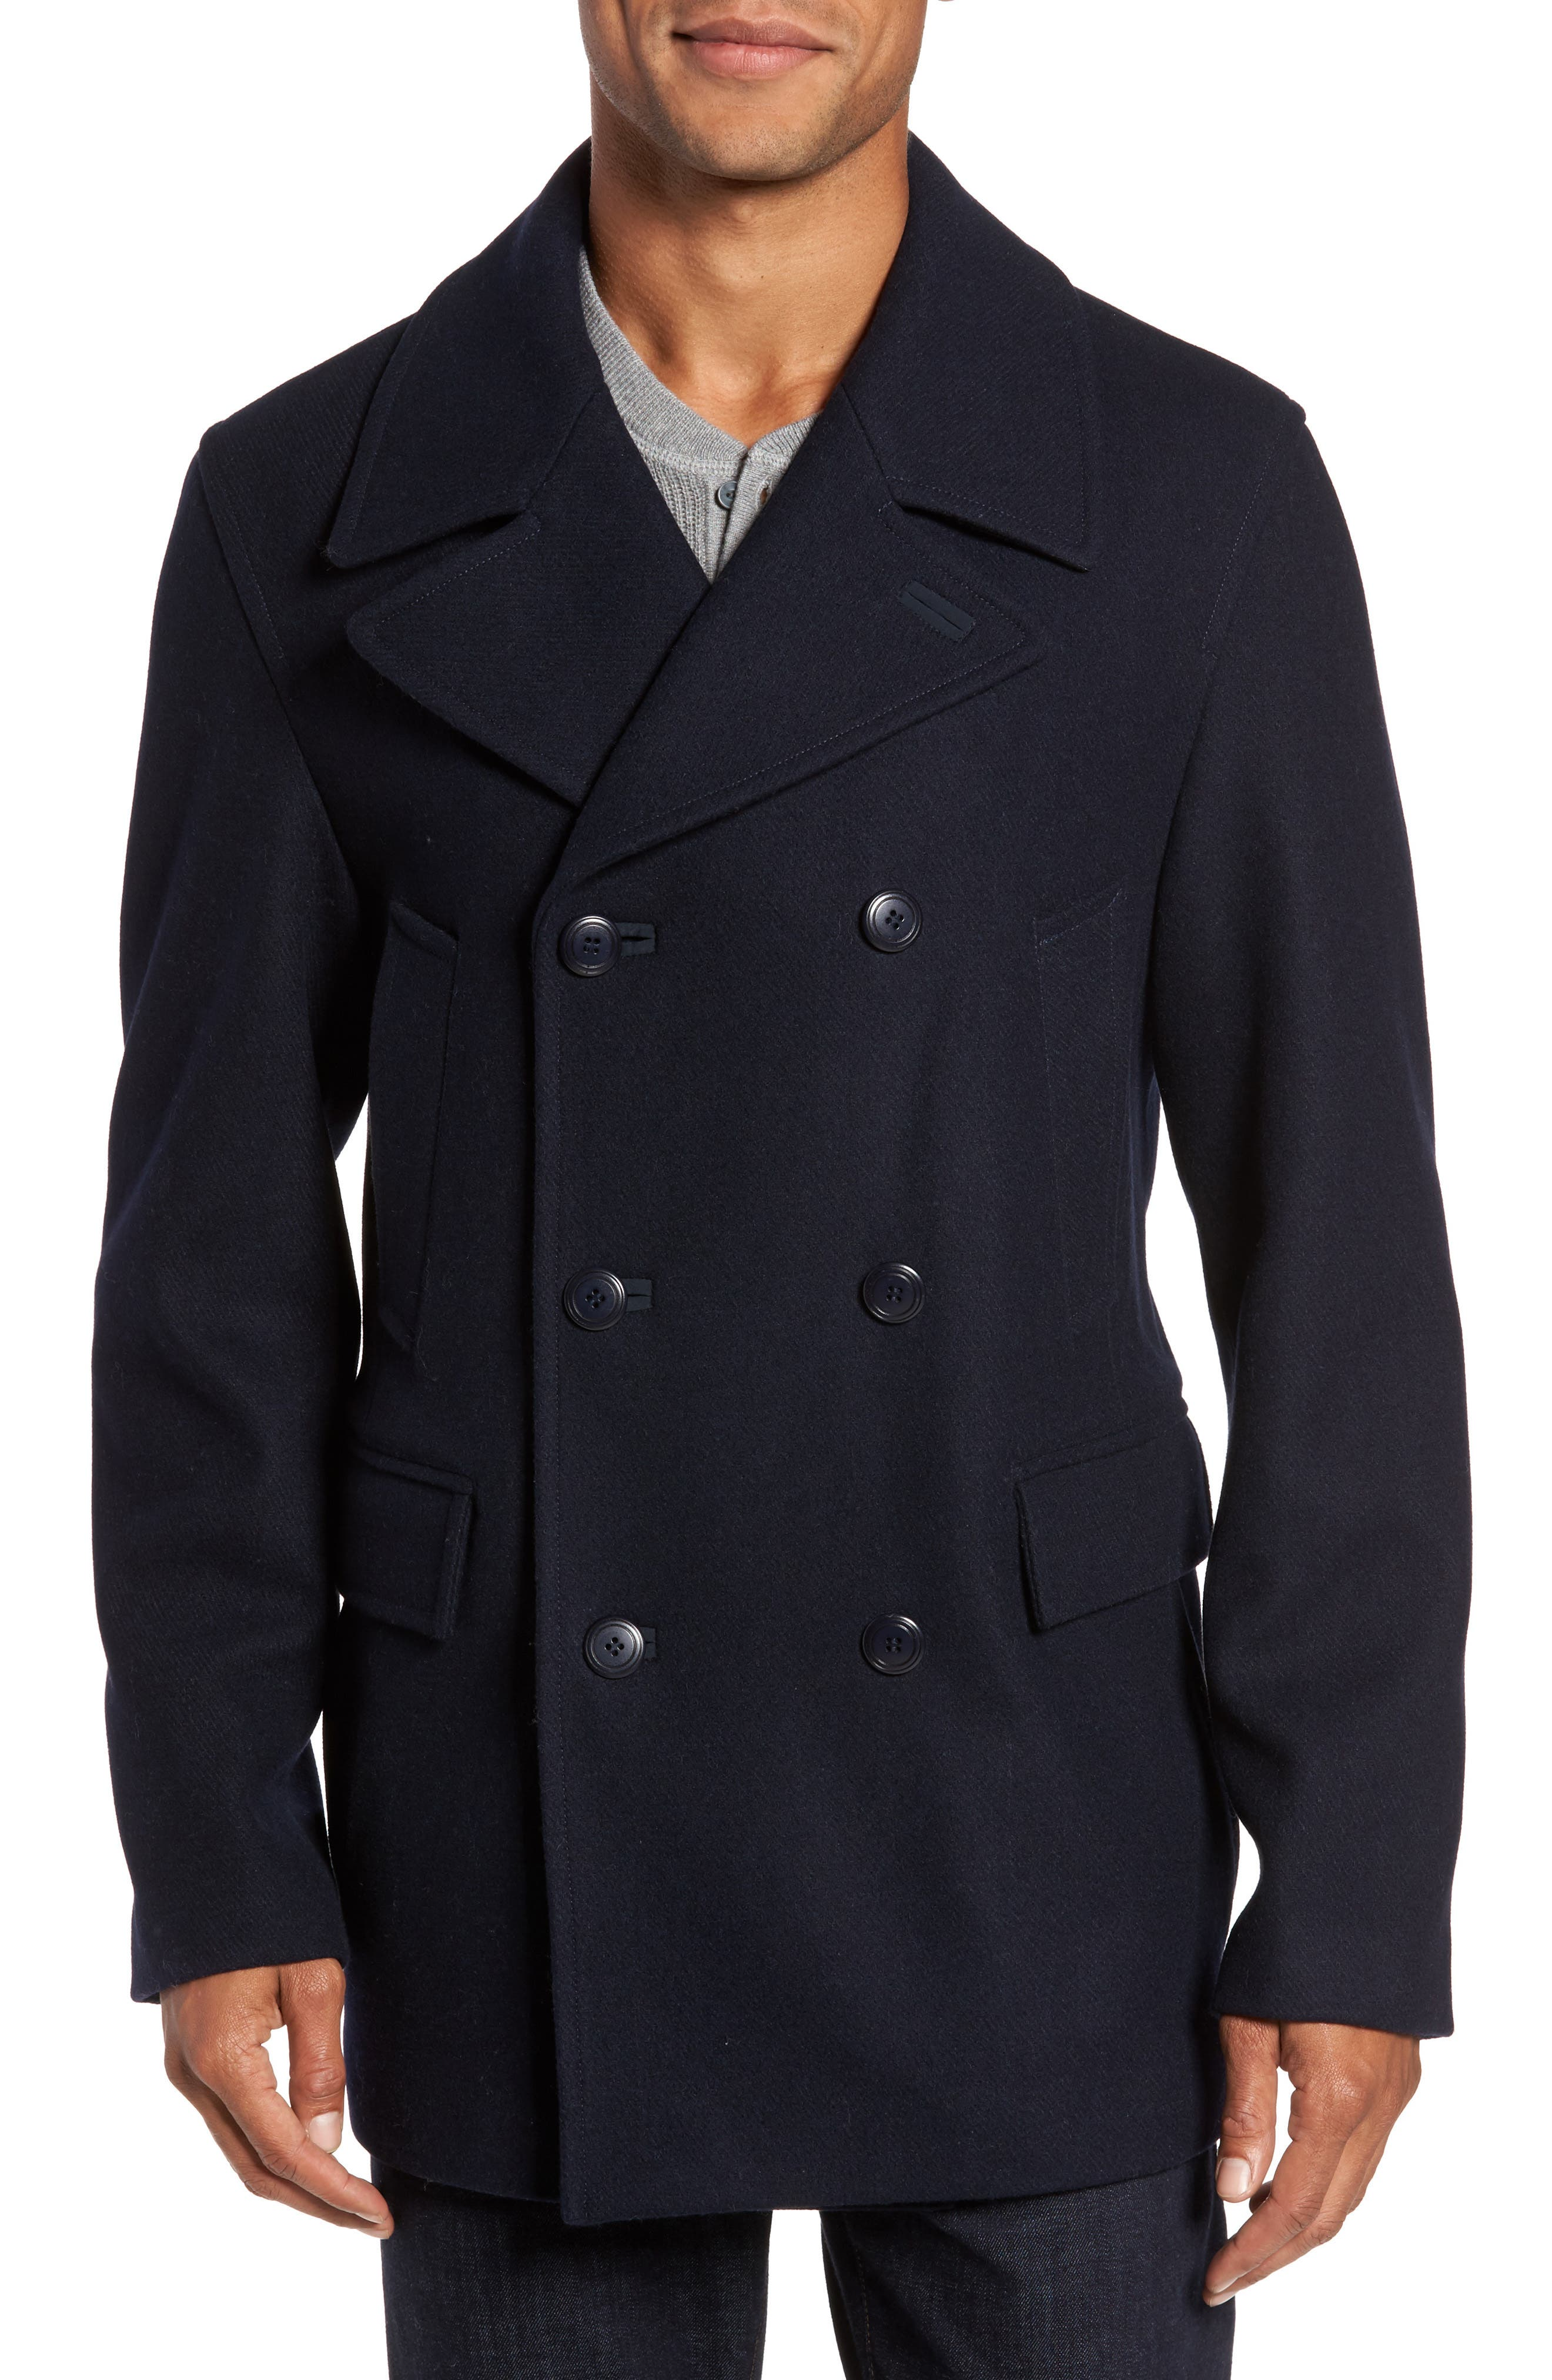 Wool Blend Peacoat,                         Main,                         color, Navy Captain